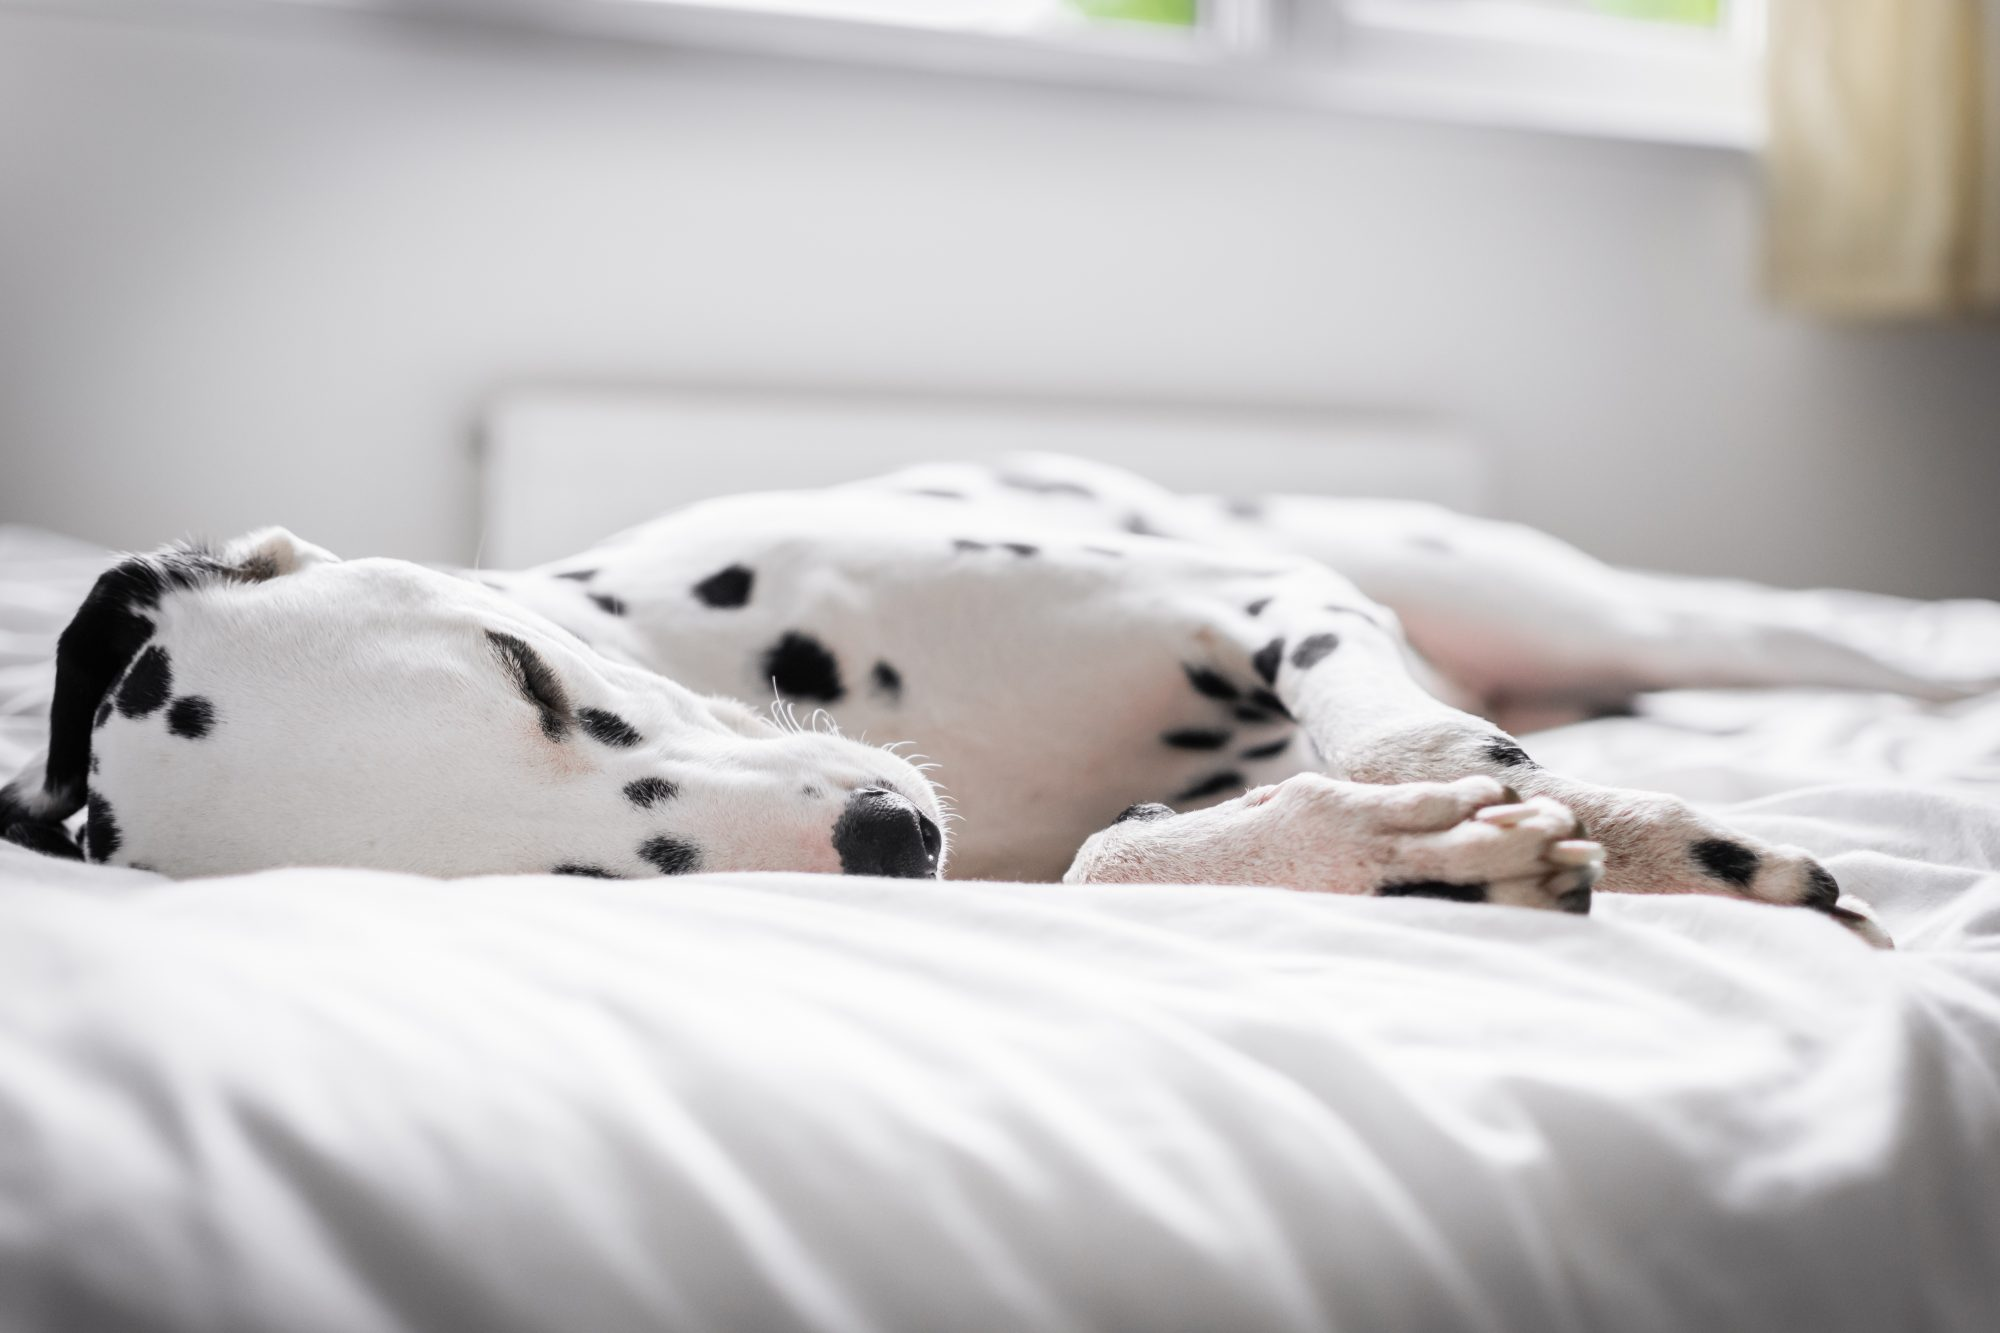 dalmation-dog-in-bed